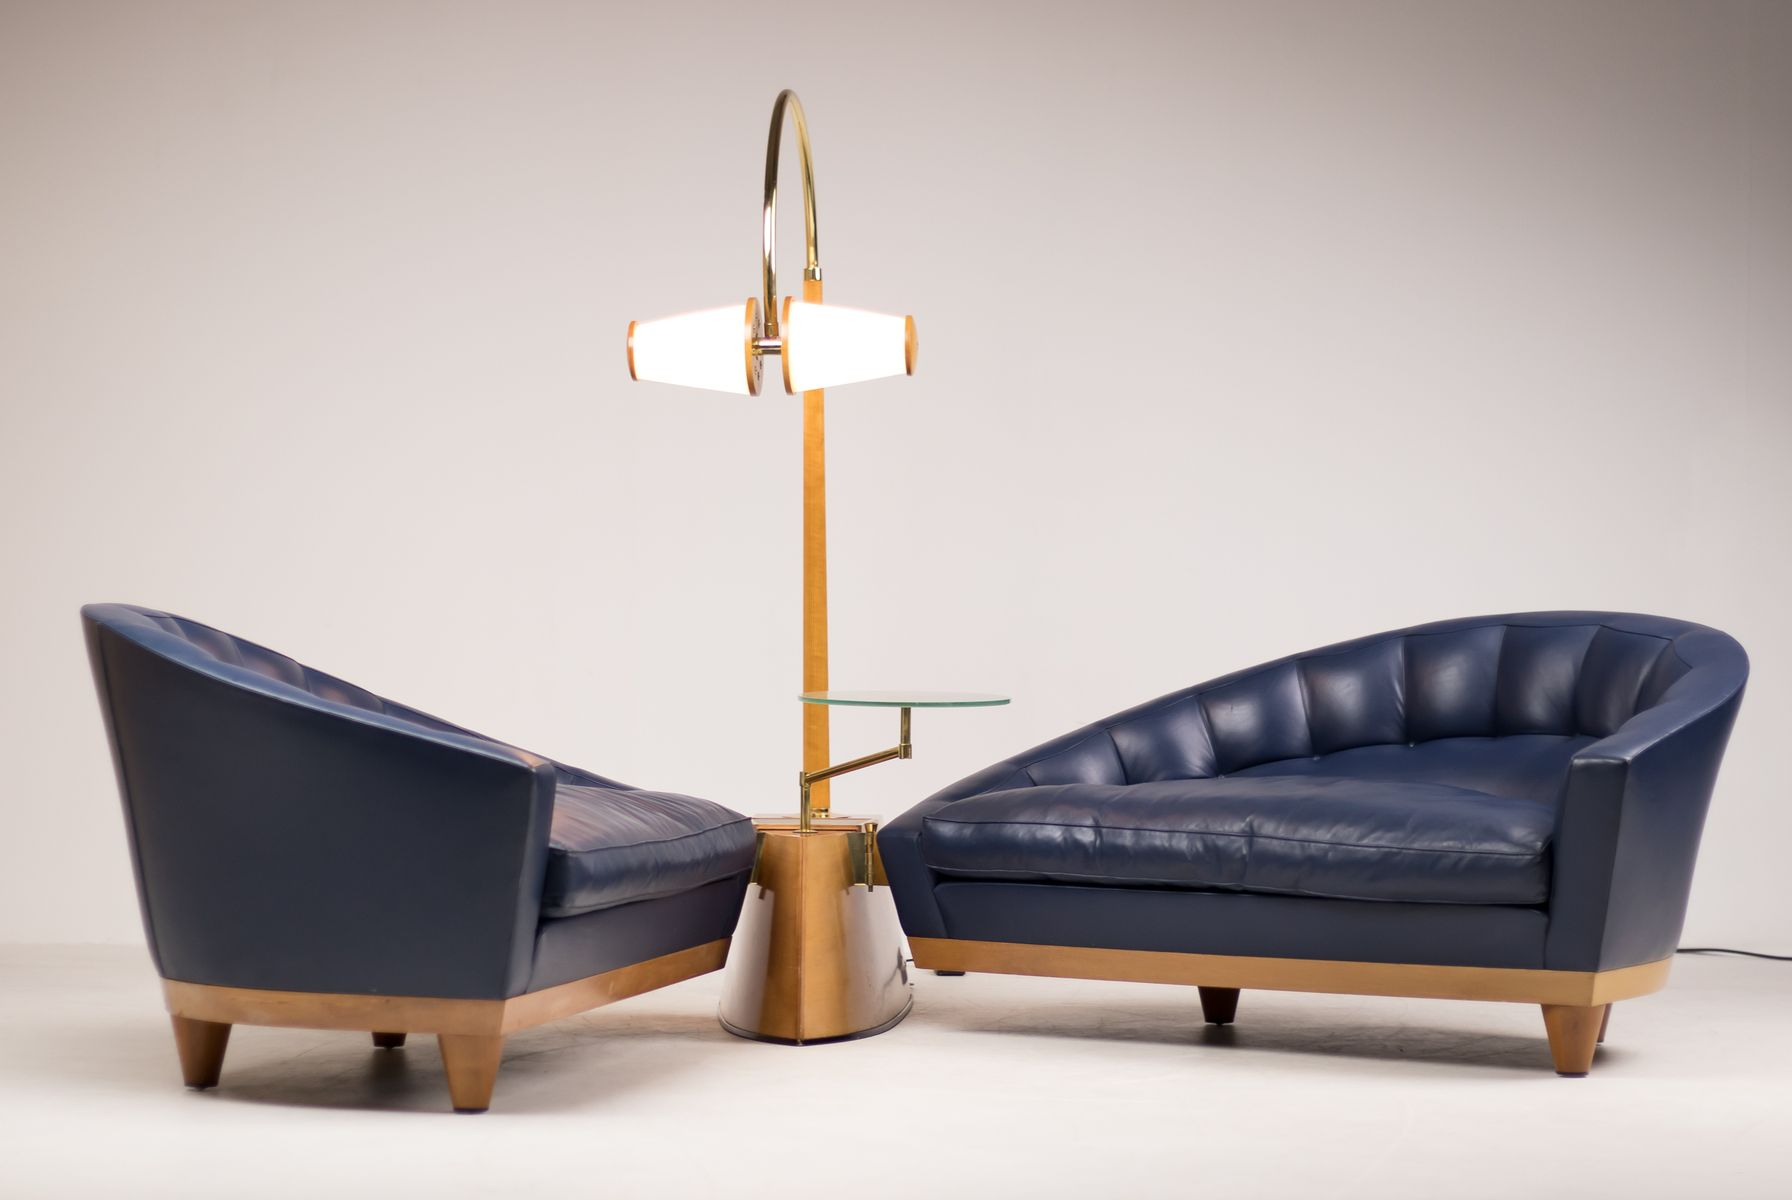 Vintage Blue Leather Aladino Living Room Set By Massimo Scolari For Giorgetti For Sale At Pamono